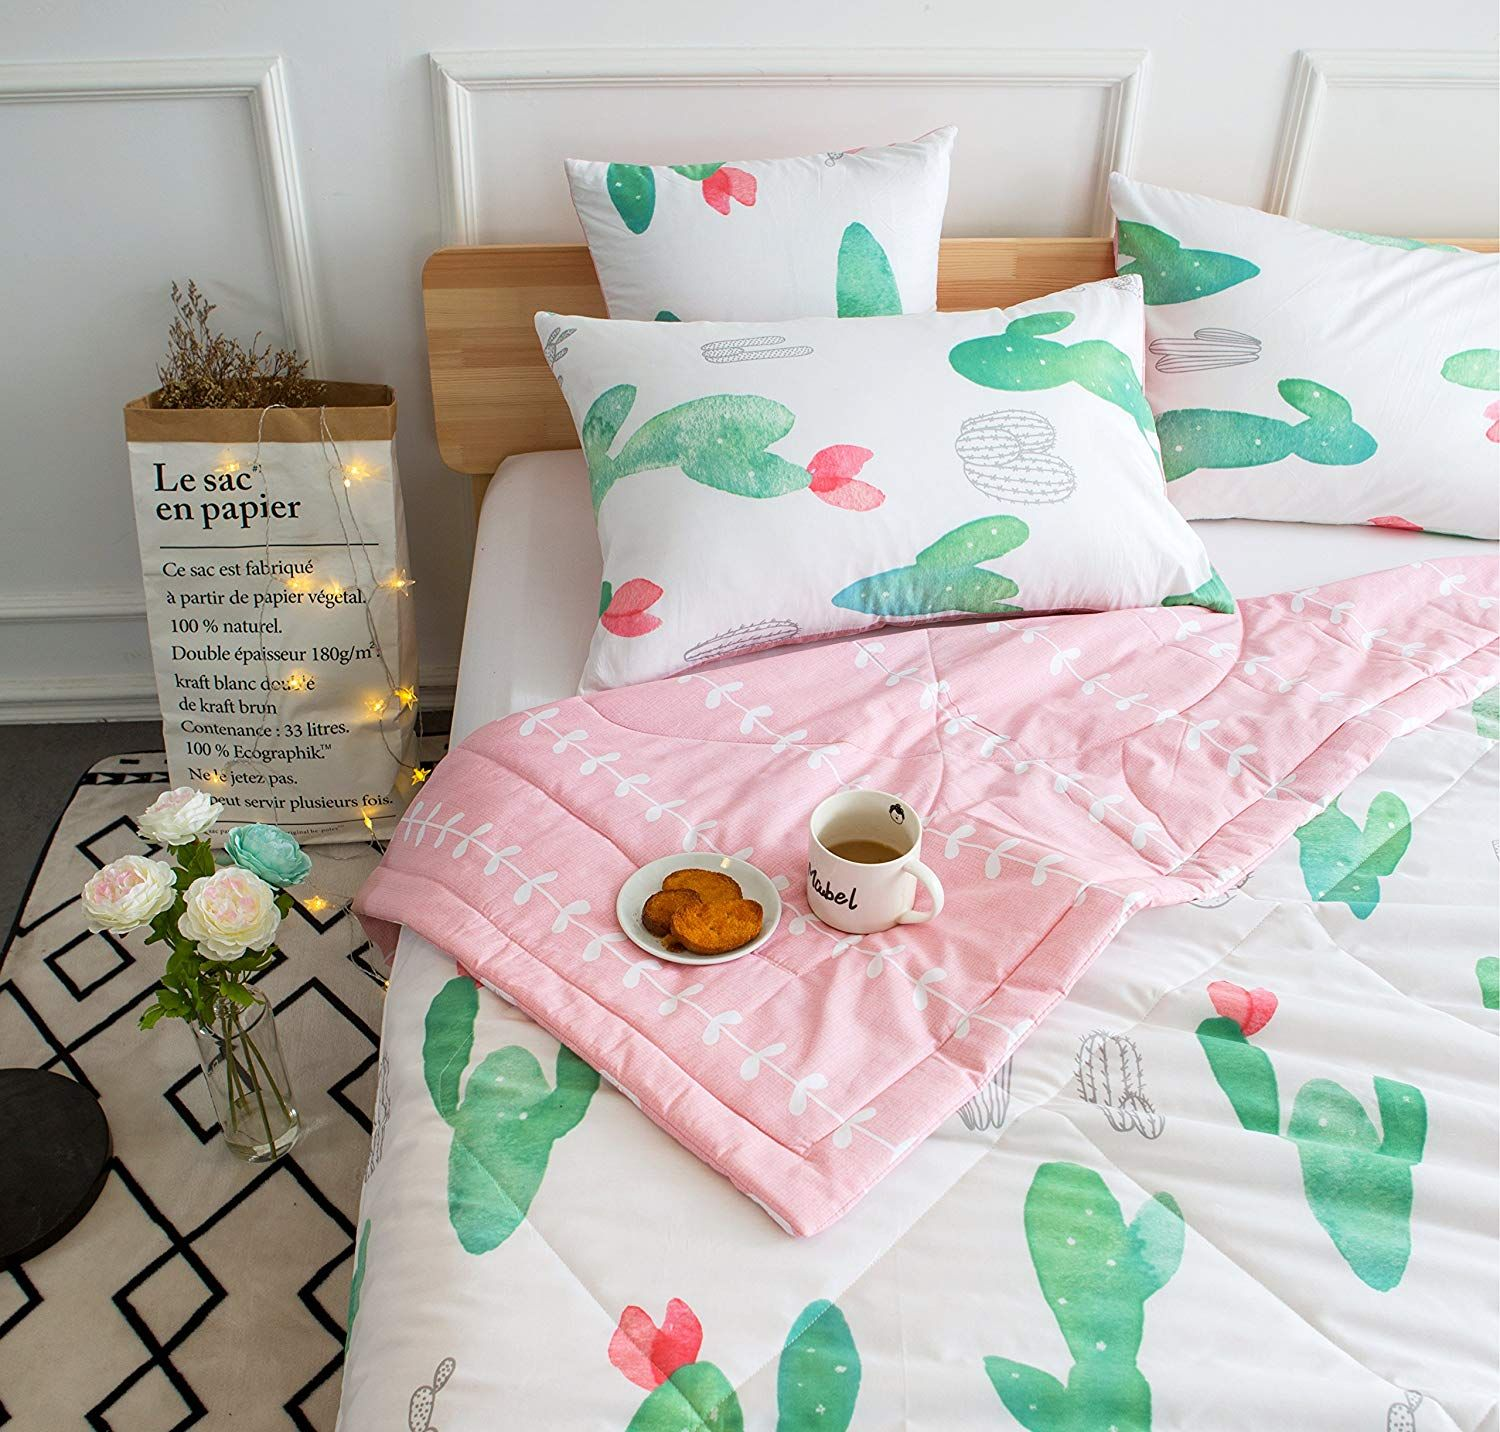 Kids Cute Cactus 4 Pieces Comforter Set Twin Bed In A Bag For Kids Bedroom 100 Cotton Comforter Flat Sheet Fitted Sheet Pillowcase Cactus Comforter Sets Twin Bed Sheets Kids Bedroom Sets